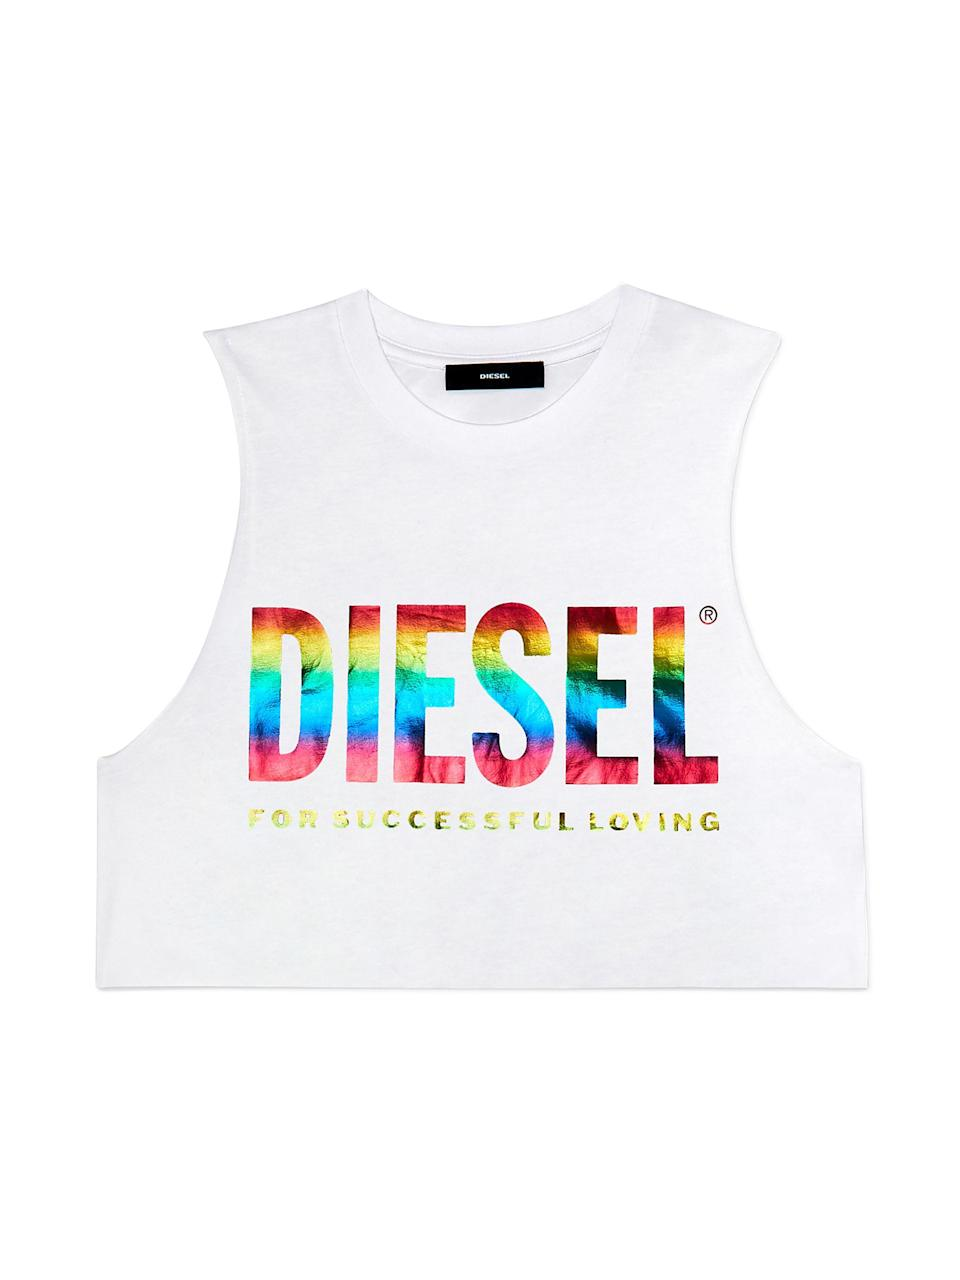 """<p><strong>Diesel</strong></p><p>diesel.com</p><p><strong>$68.00</strong></p><p><a href=""""https://go.redirectingat.com?id=74968X1596630&url=https%3A%2F%2Fshop.diesel.com%2Fen%2Ftshirts%2Fbmowt-diego-new-p%2F00SLT10GAYL.html&sref=https%3A%2F%2Fwww.harpersbazaar.com%2Ffashion%2Ftrends%2Fg32932586%2Fpride-month-outfit-ideas%2F"""" rel=""""nofollow noopener"""" target=""""_blank"""" data-ylk=""""slk:Shop Now"""" class=""""link rapid-noclick-resp"""">Shop Now</a></p><p>For Pride 2020, the Italian clothing brand launched a capsule collection titled For Successful Loving. It also plans to support the San Francisco Lesbian Gay Bisexual Transgender Community Center and Transgender Europe.</p>"""